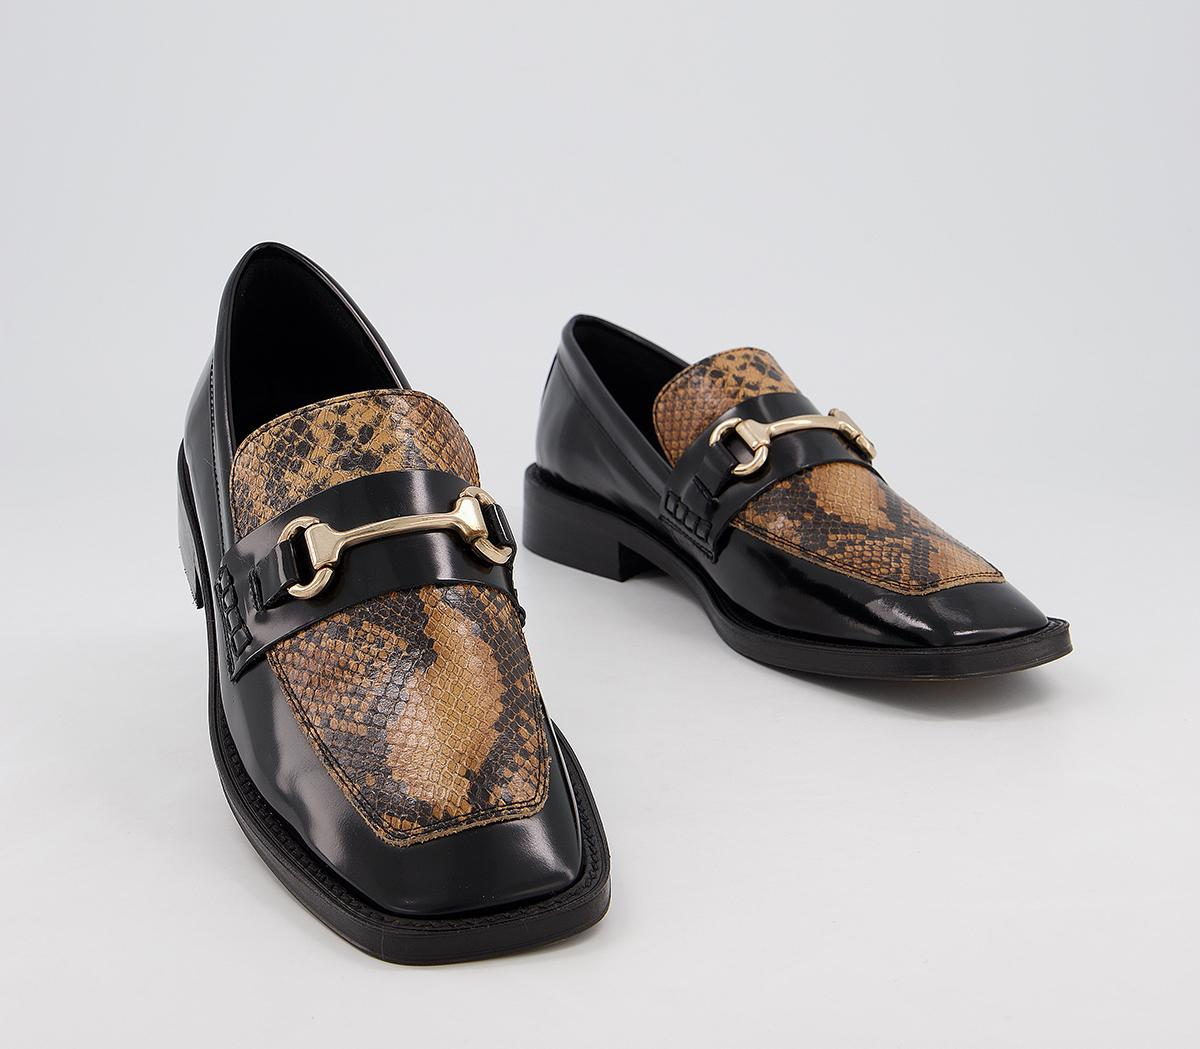 Freed Square Toe Loafers Black Leather Snake Mix